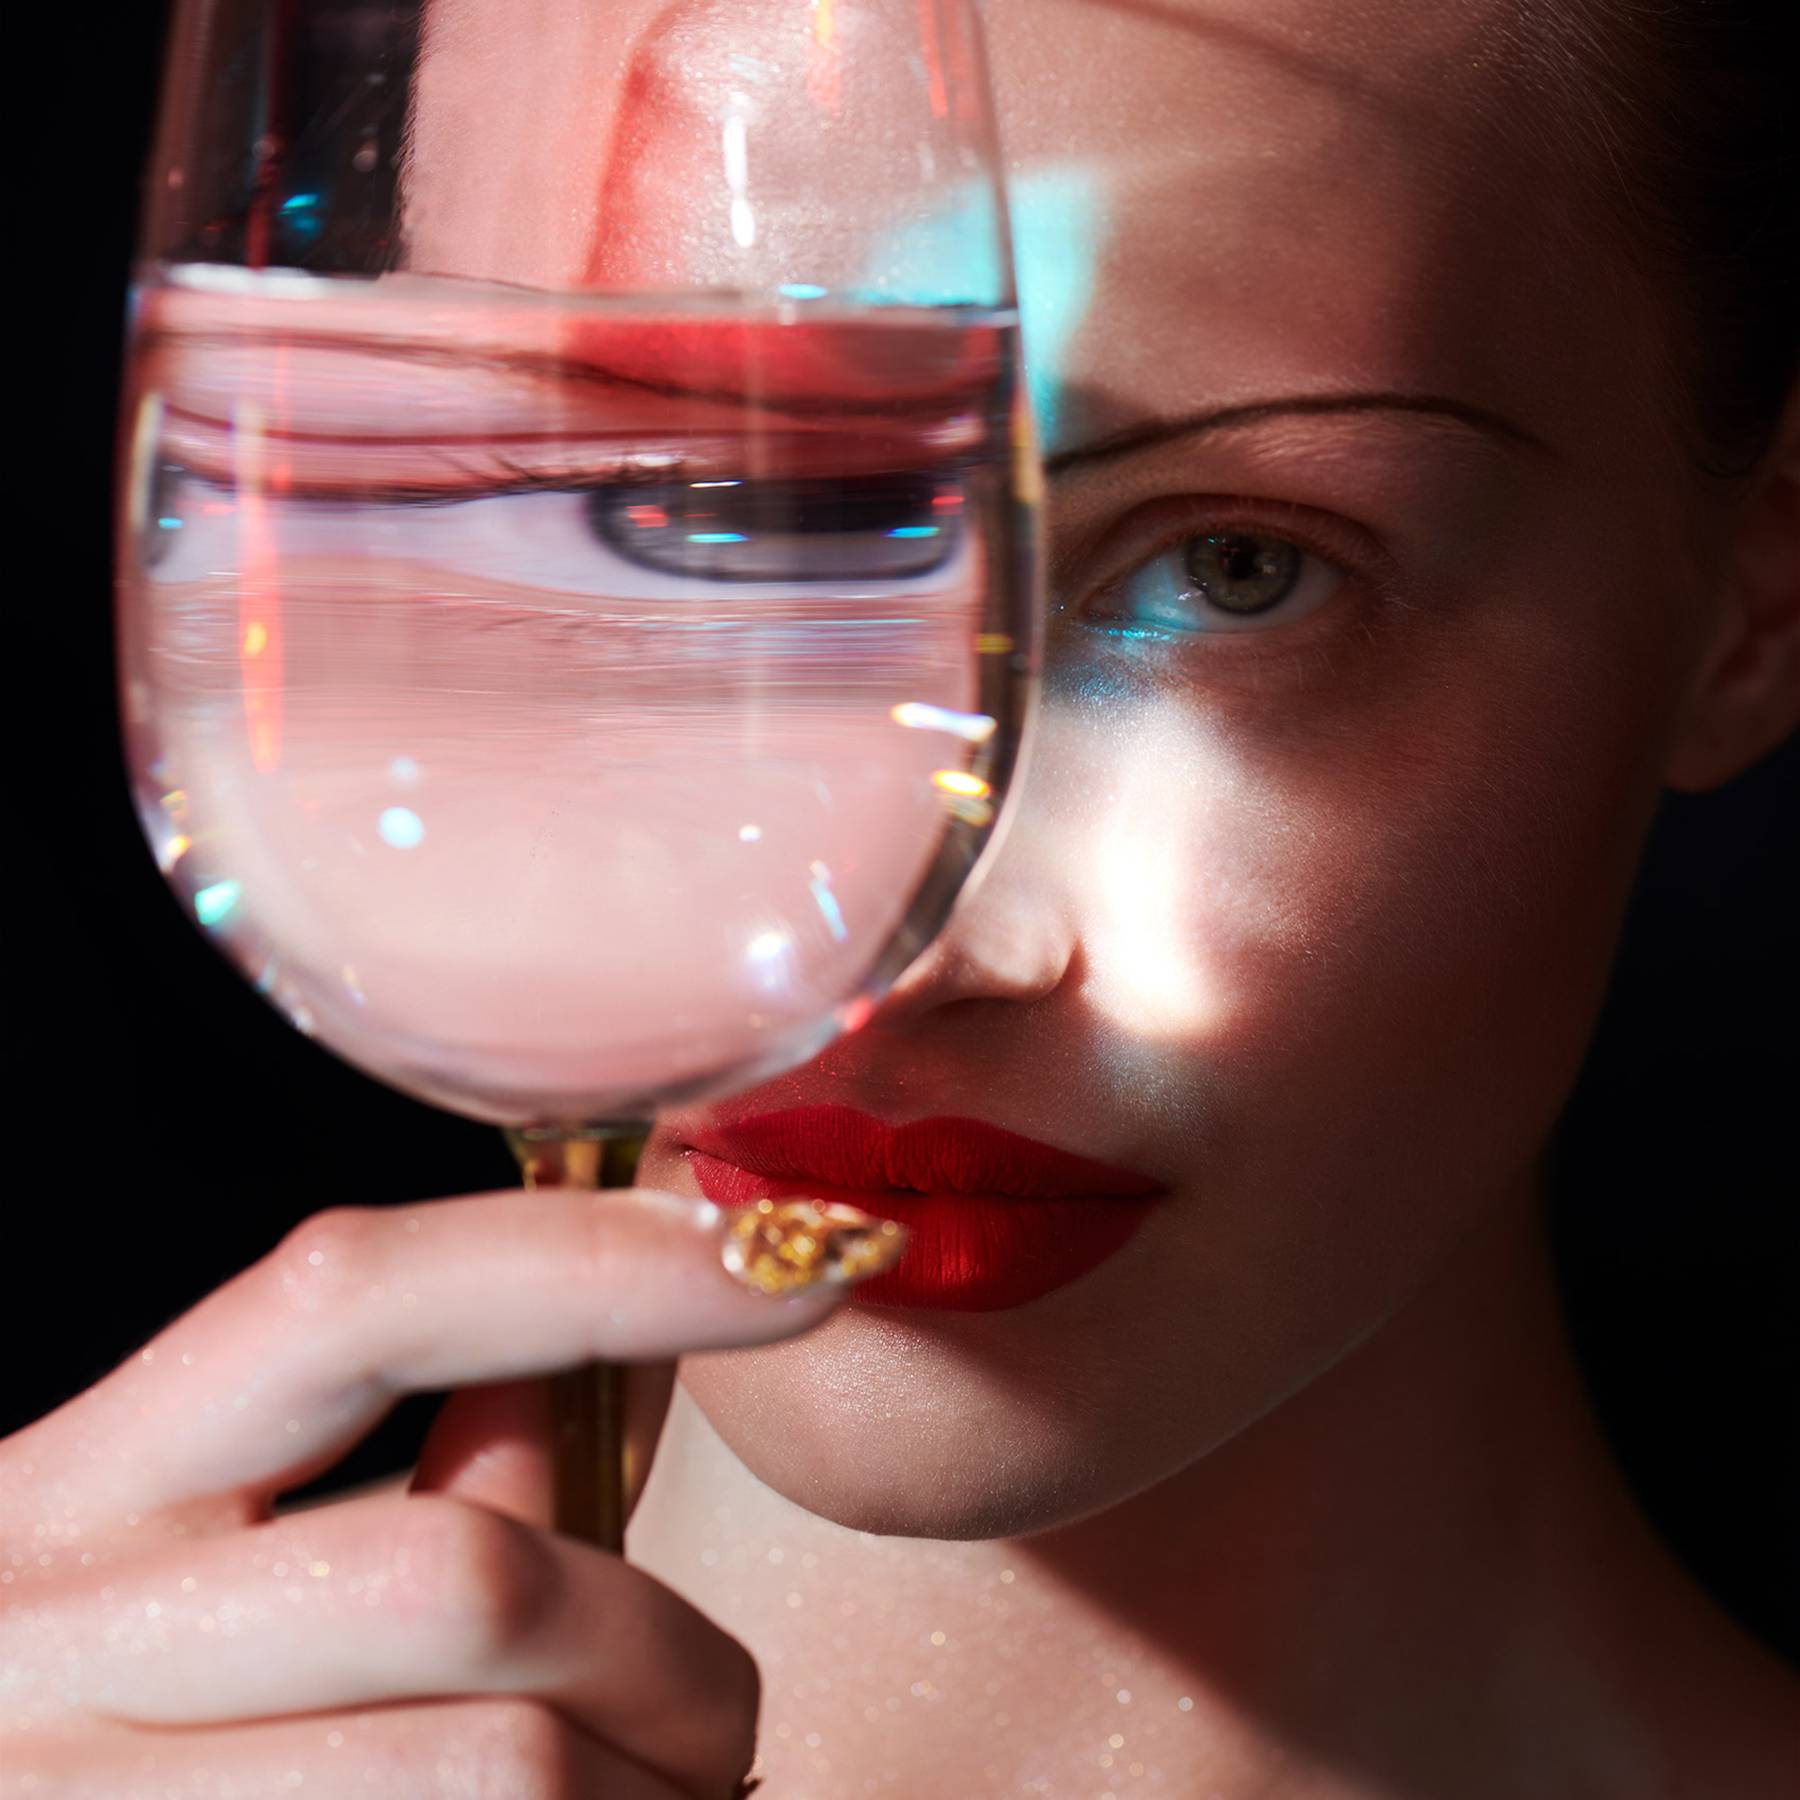 'If the alcohol industry can glamorise alcohol then I'm going to glamorise sobriety': Why going sober is the wellness trend to try in 2020